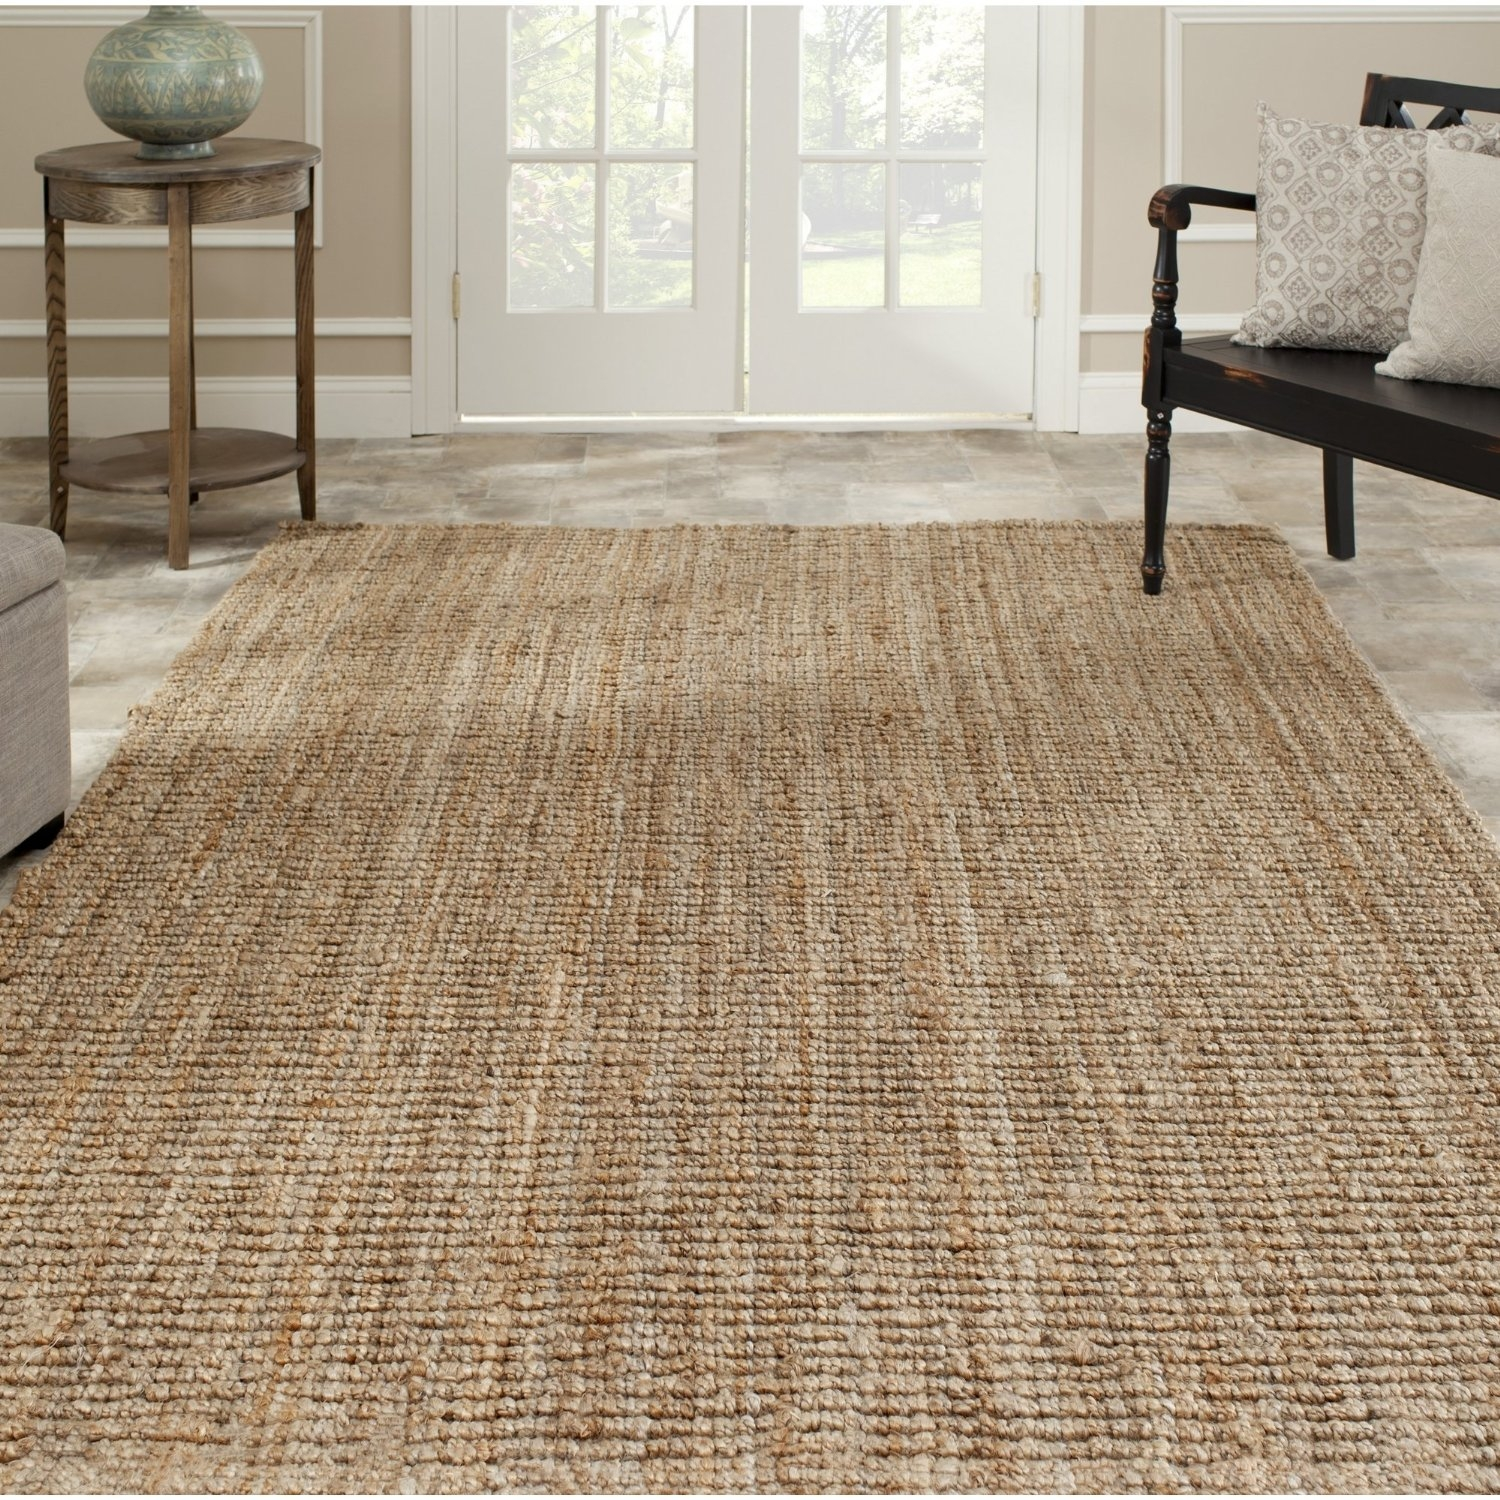 12 X 12 Carpet Carpet Vidalondon With Regard To Non Toxic Wool Area Rugs (#1 of 15)